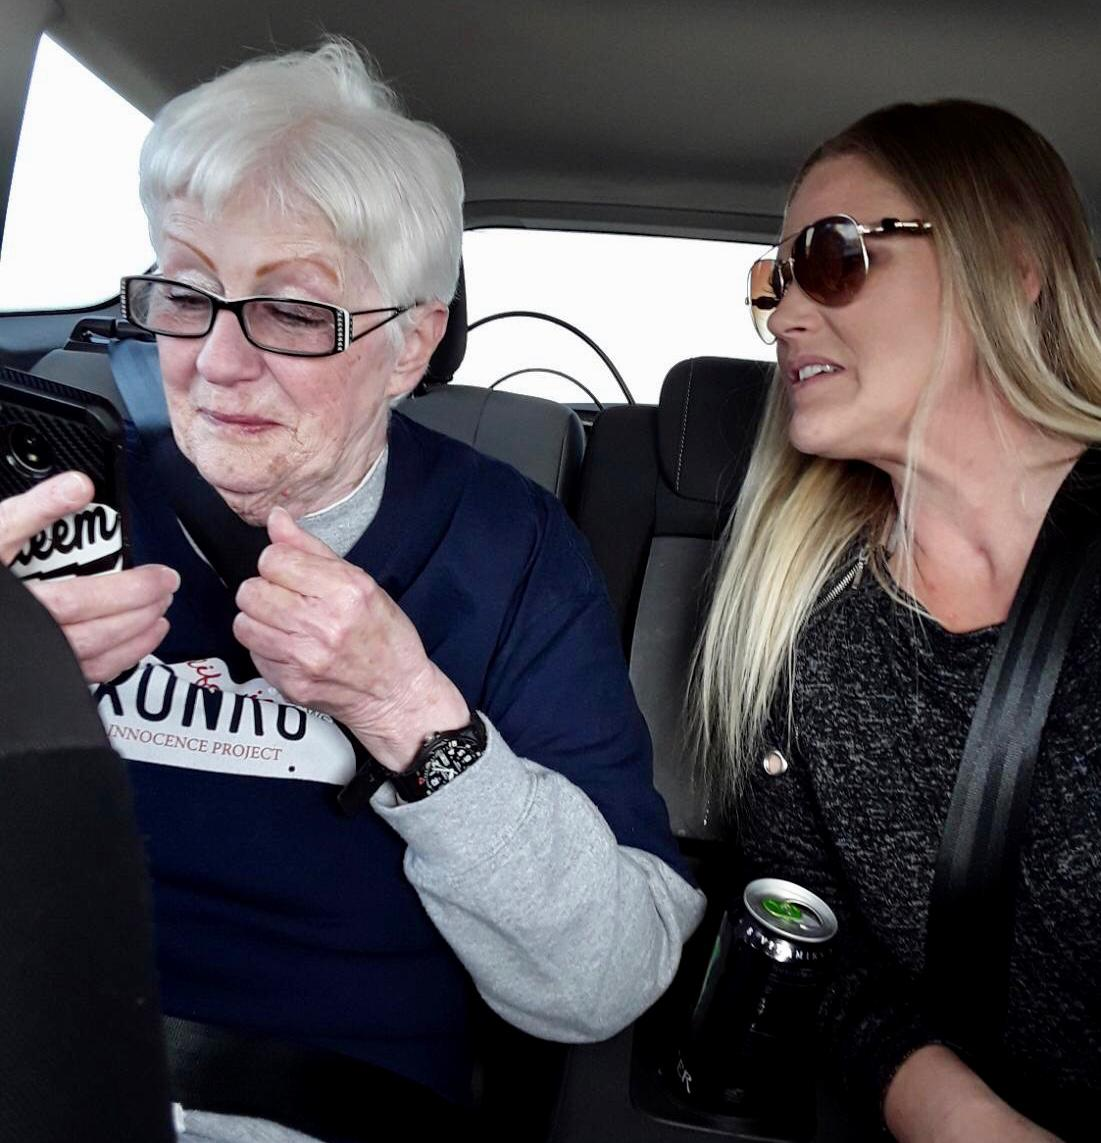 Suzanne Johnson looks at a cell phone as she drives away from a prison.